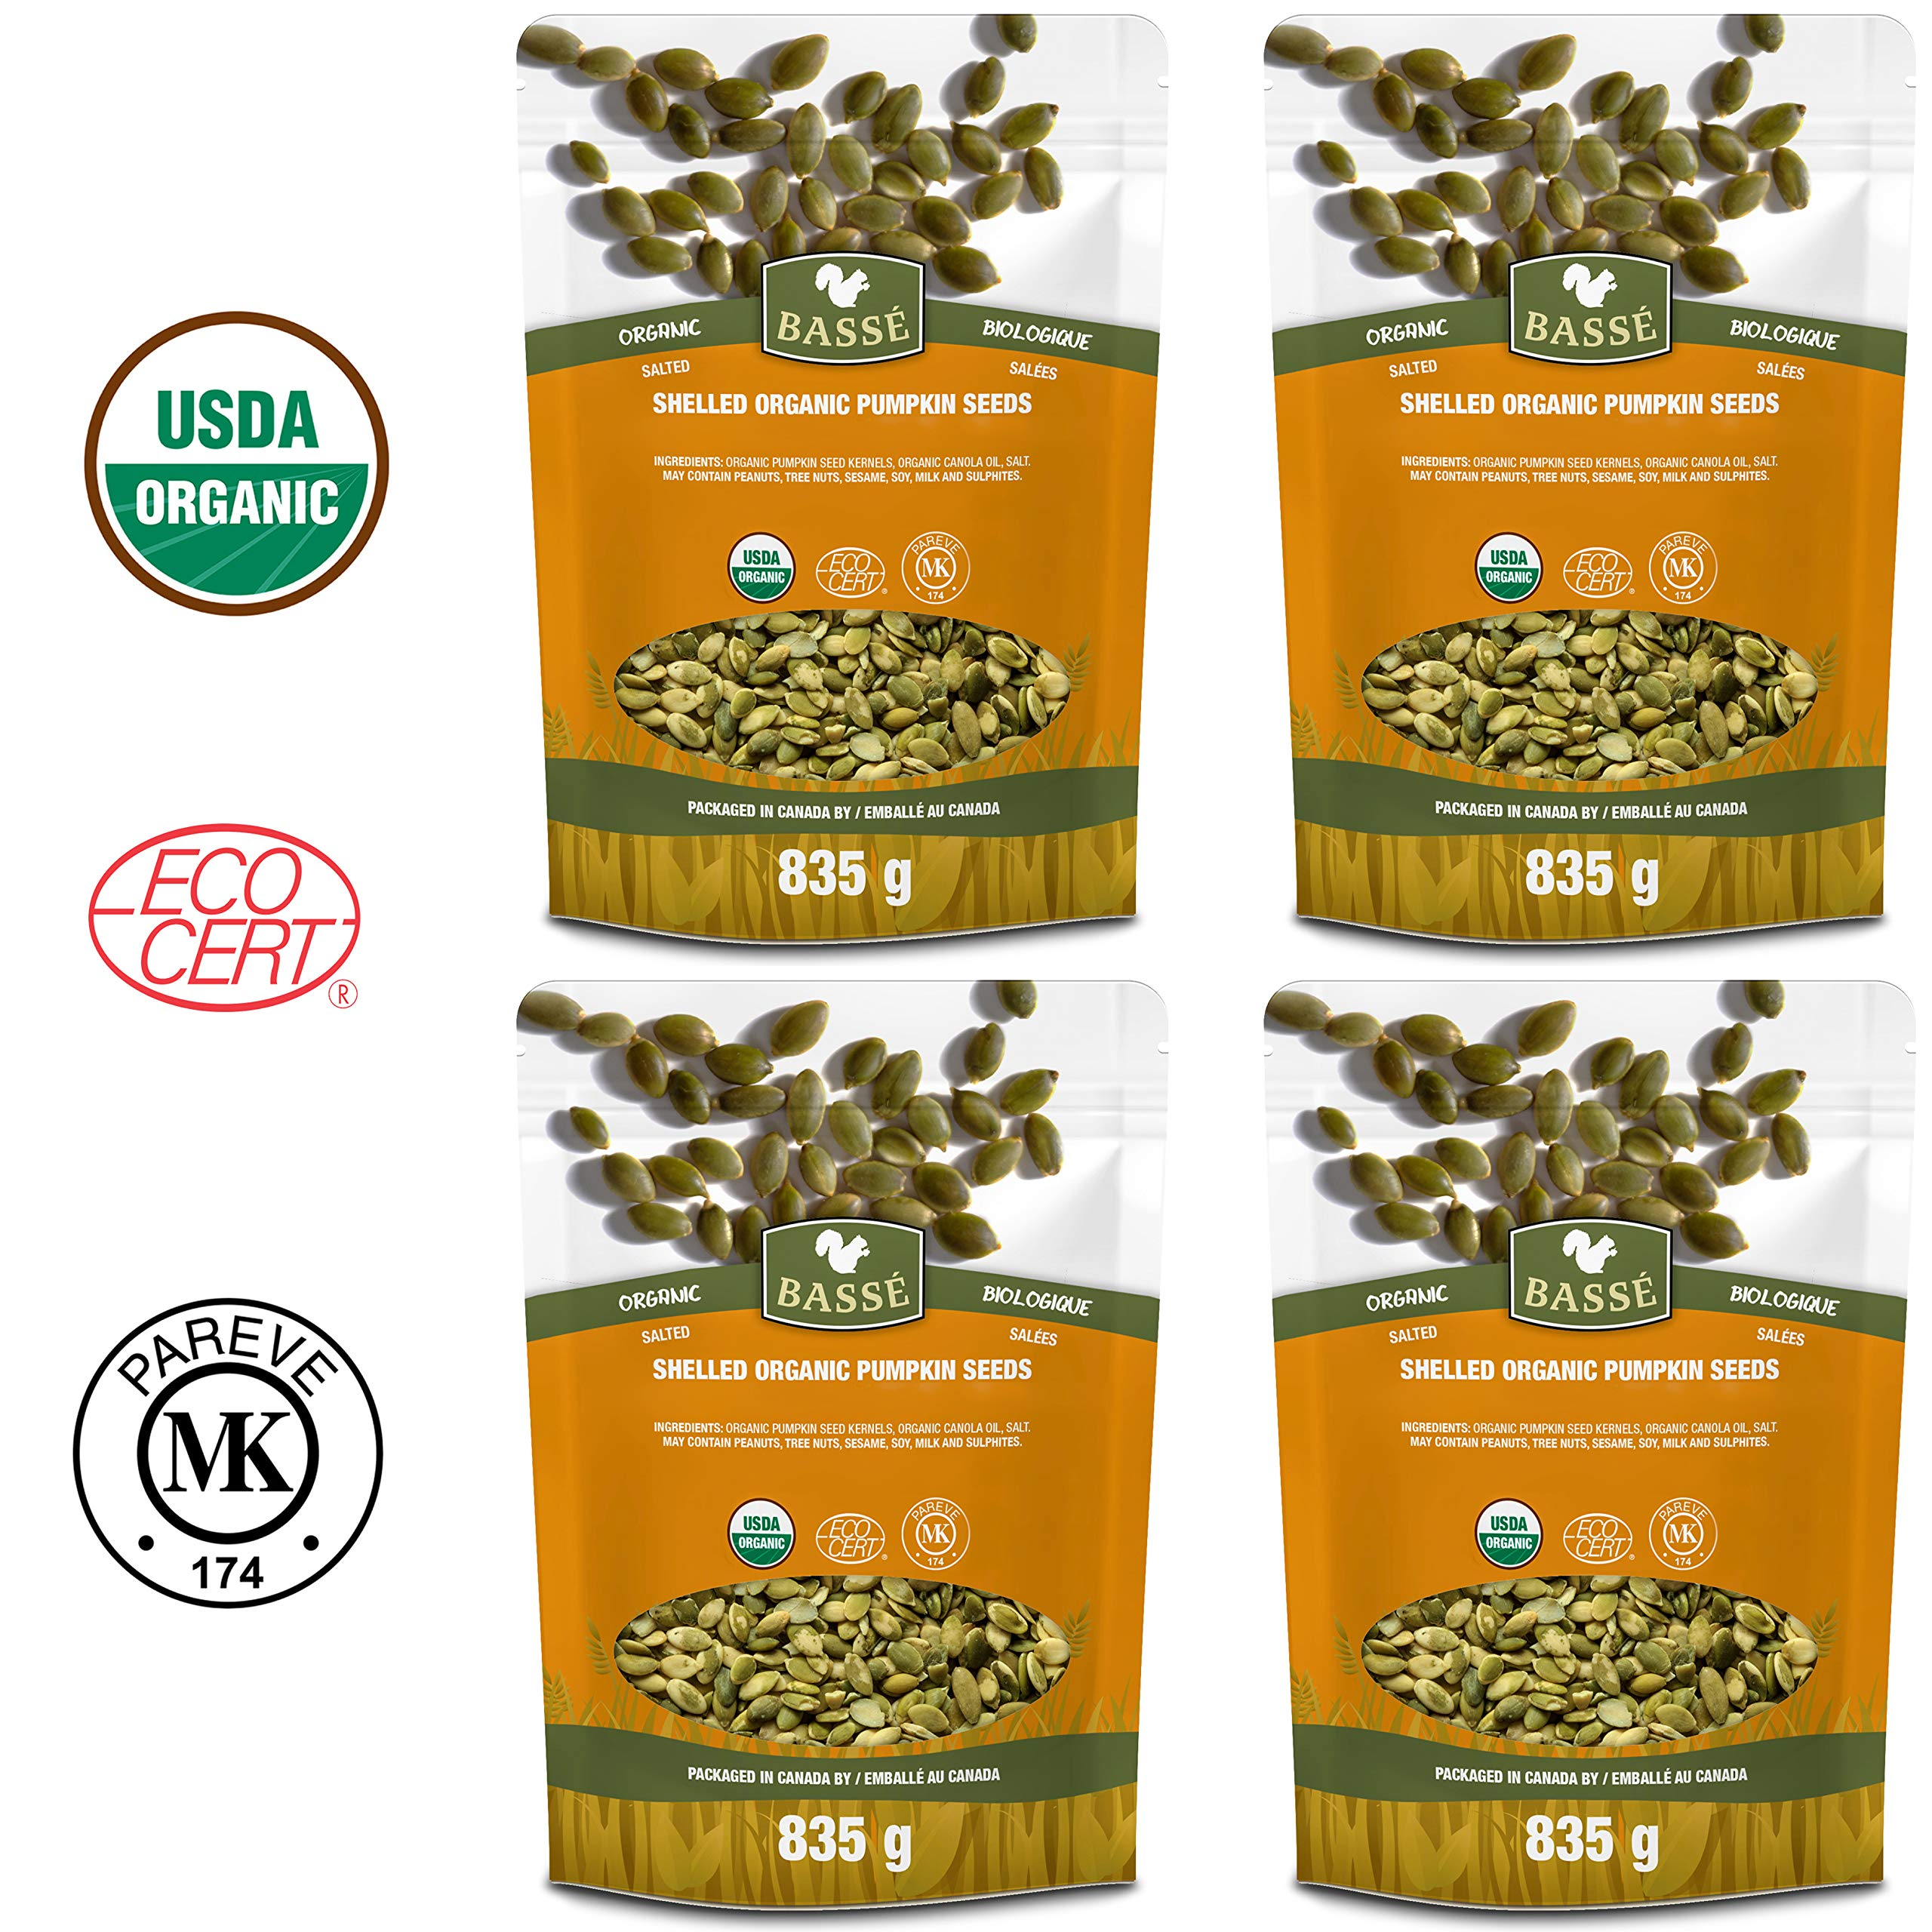 Basse Organic Pumpkin Seeds Kernels Nutritious, Salted, Wholesome, Superfood Snack 7.36 lb